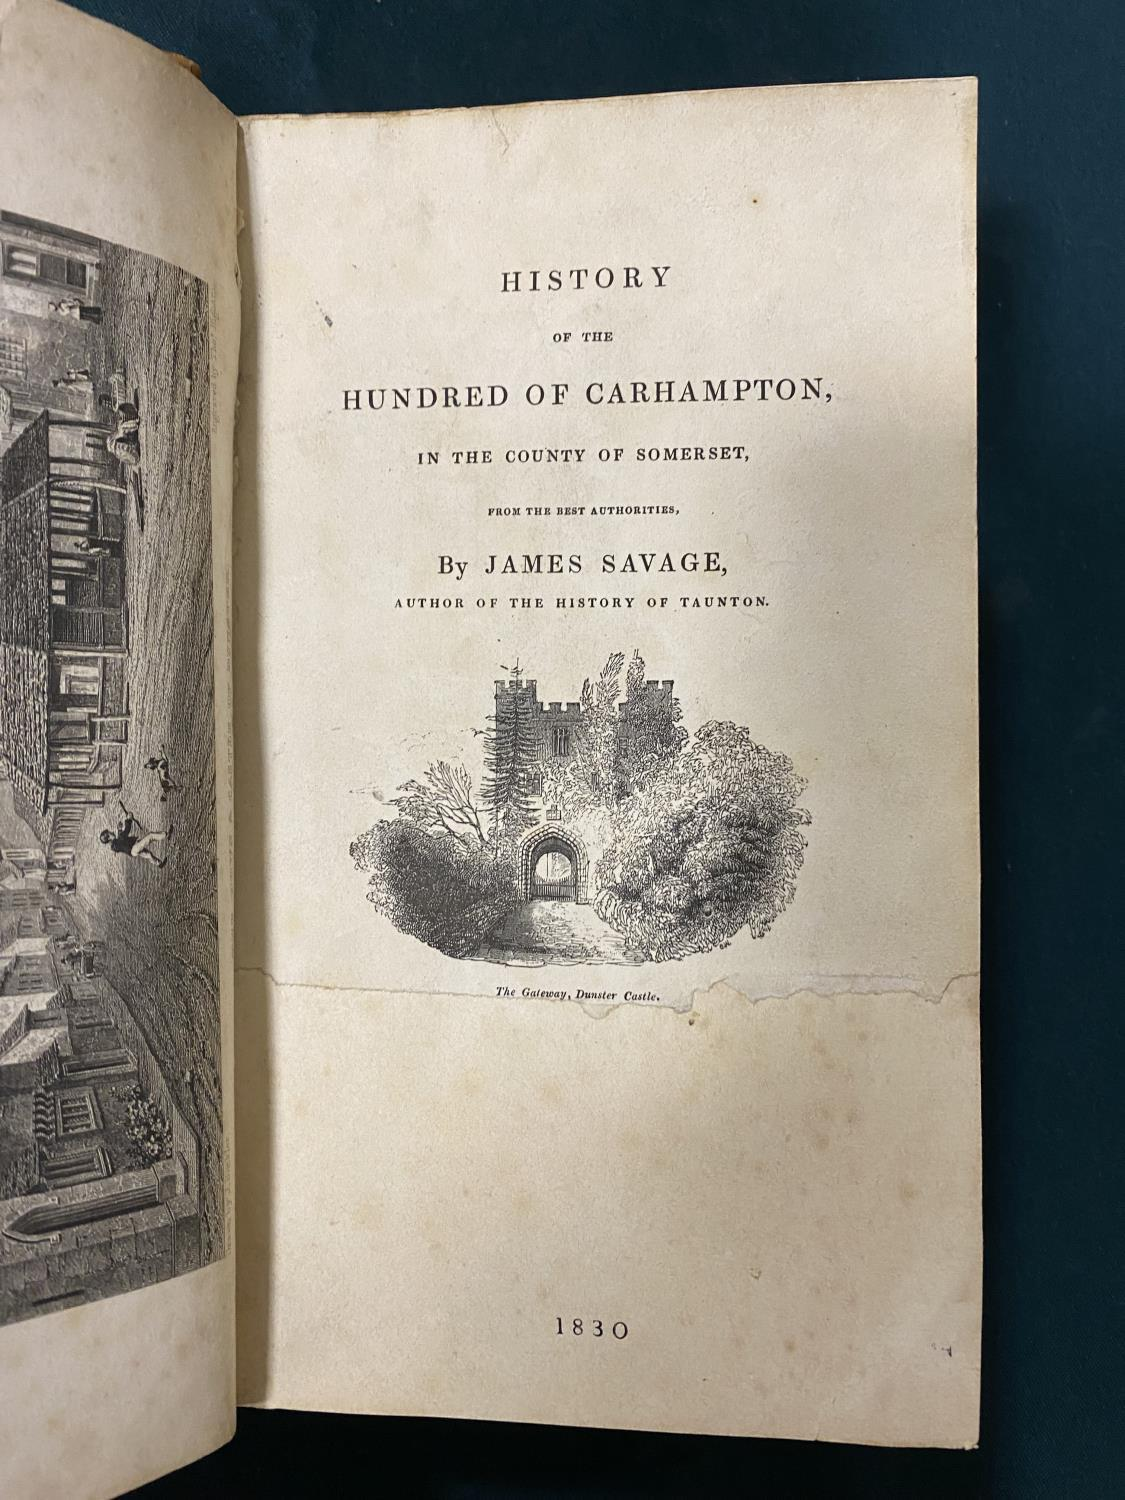 Healey, Charles E. H. Chadwick. The History of the Part of West Somerset, one of 380 copies, plates, - Image 2 of 8